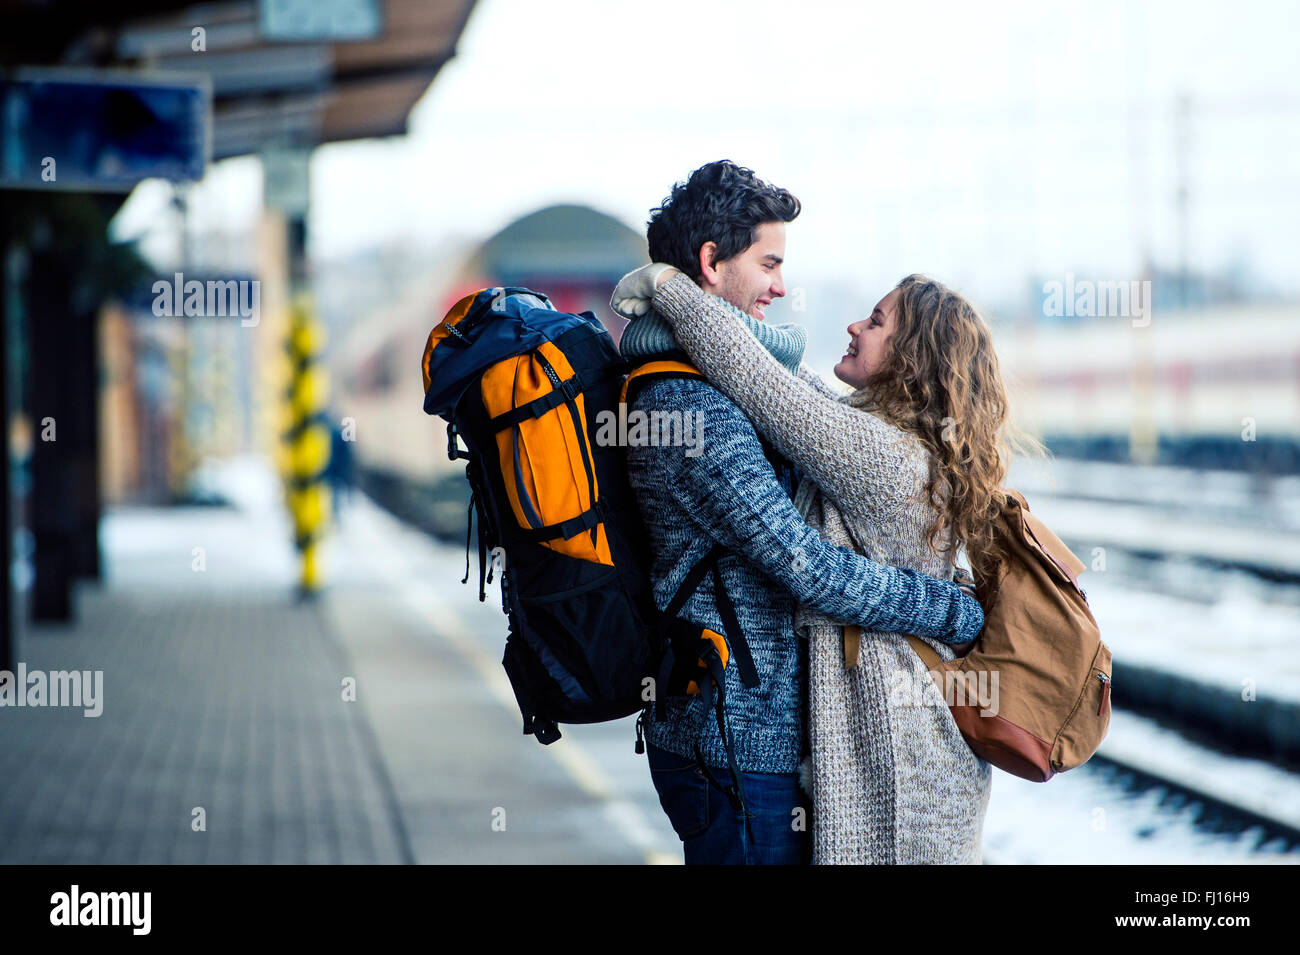 Smiling young couple embracing on station platform - Stock Image